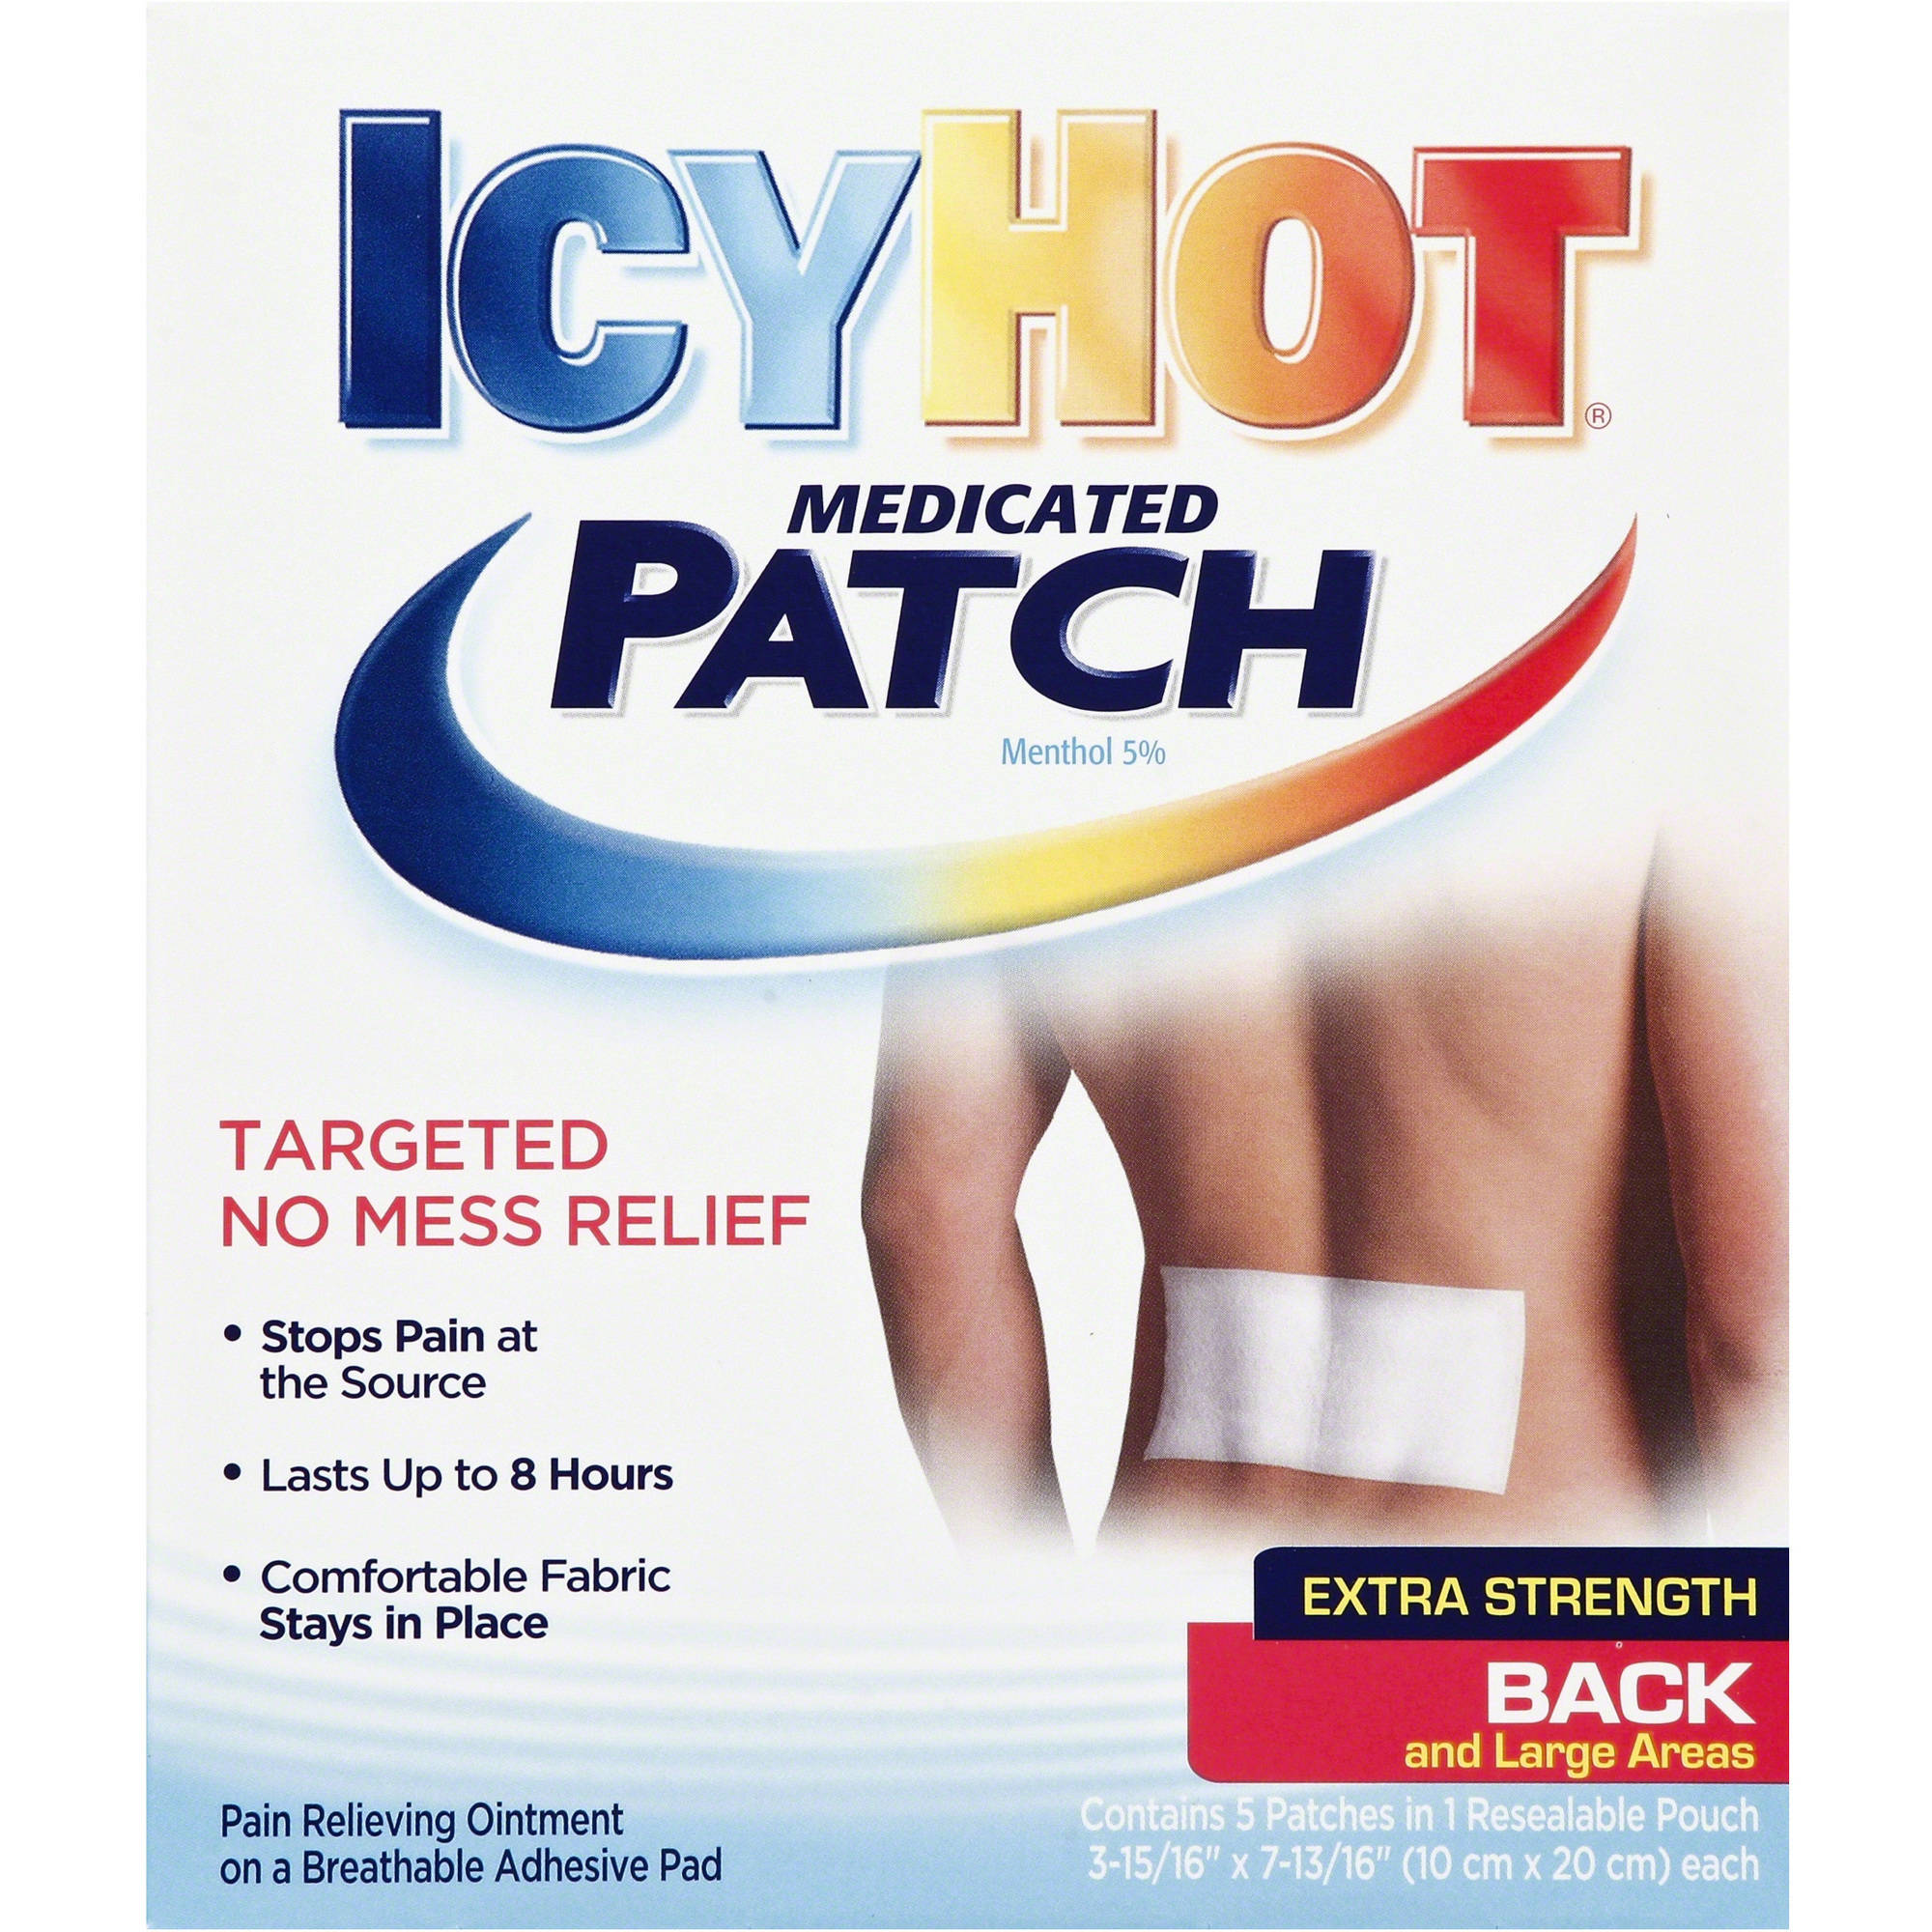 Icy Hot Extra Strength Back & Large Areas Medicated Patch - 5ct